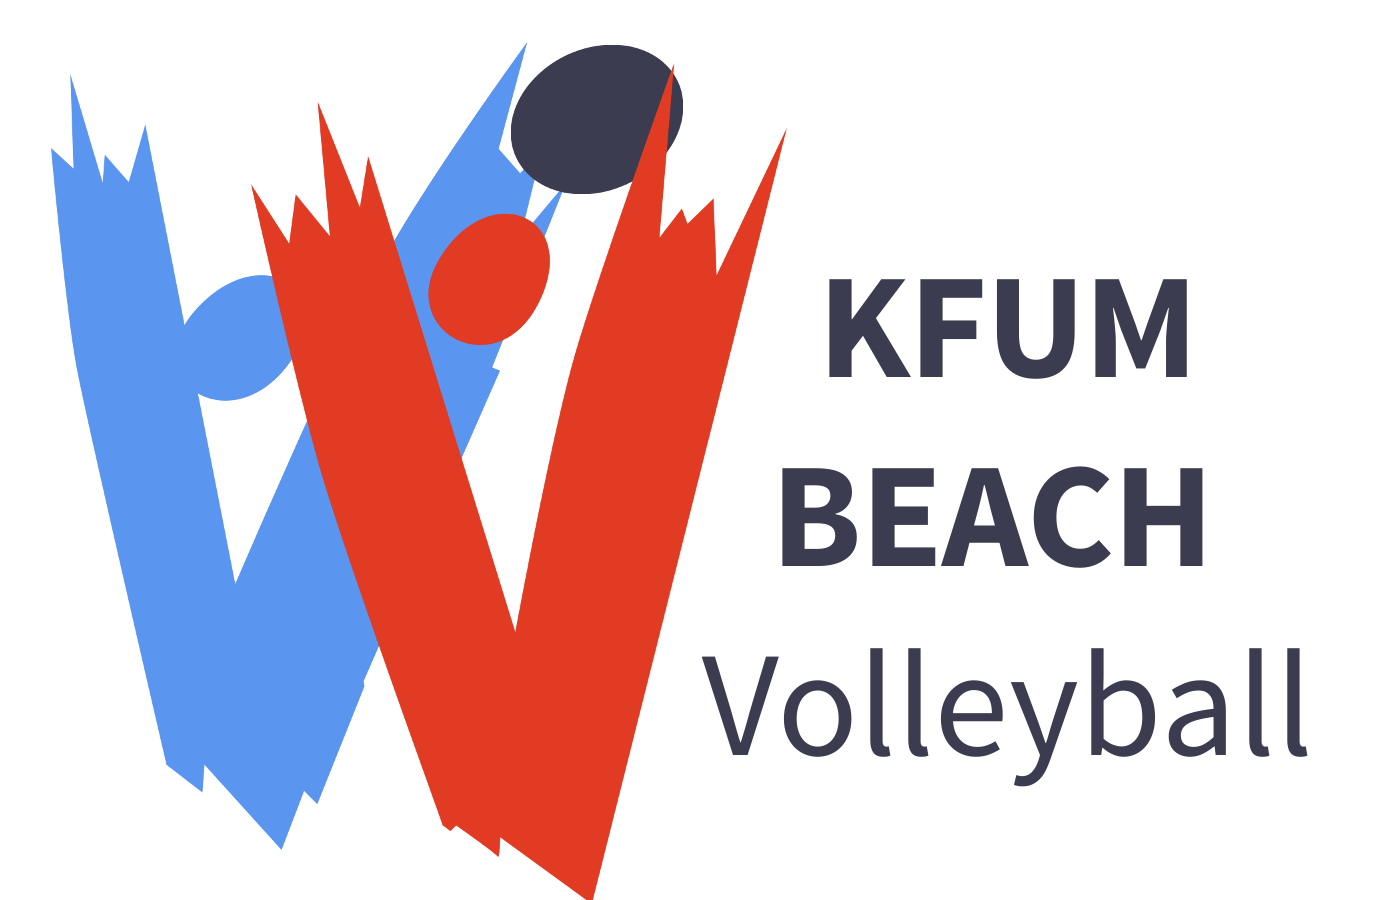 KFUM turnering logo